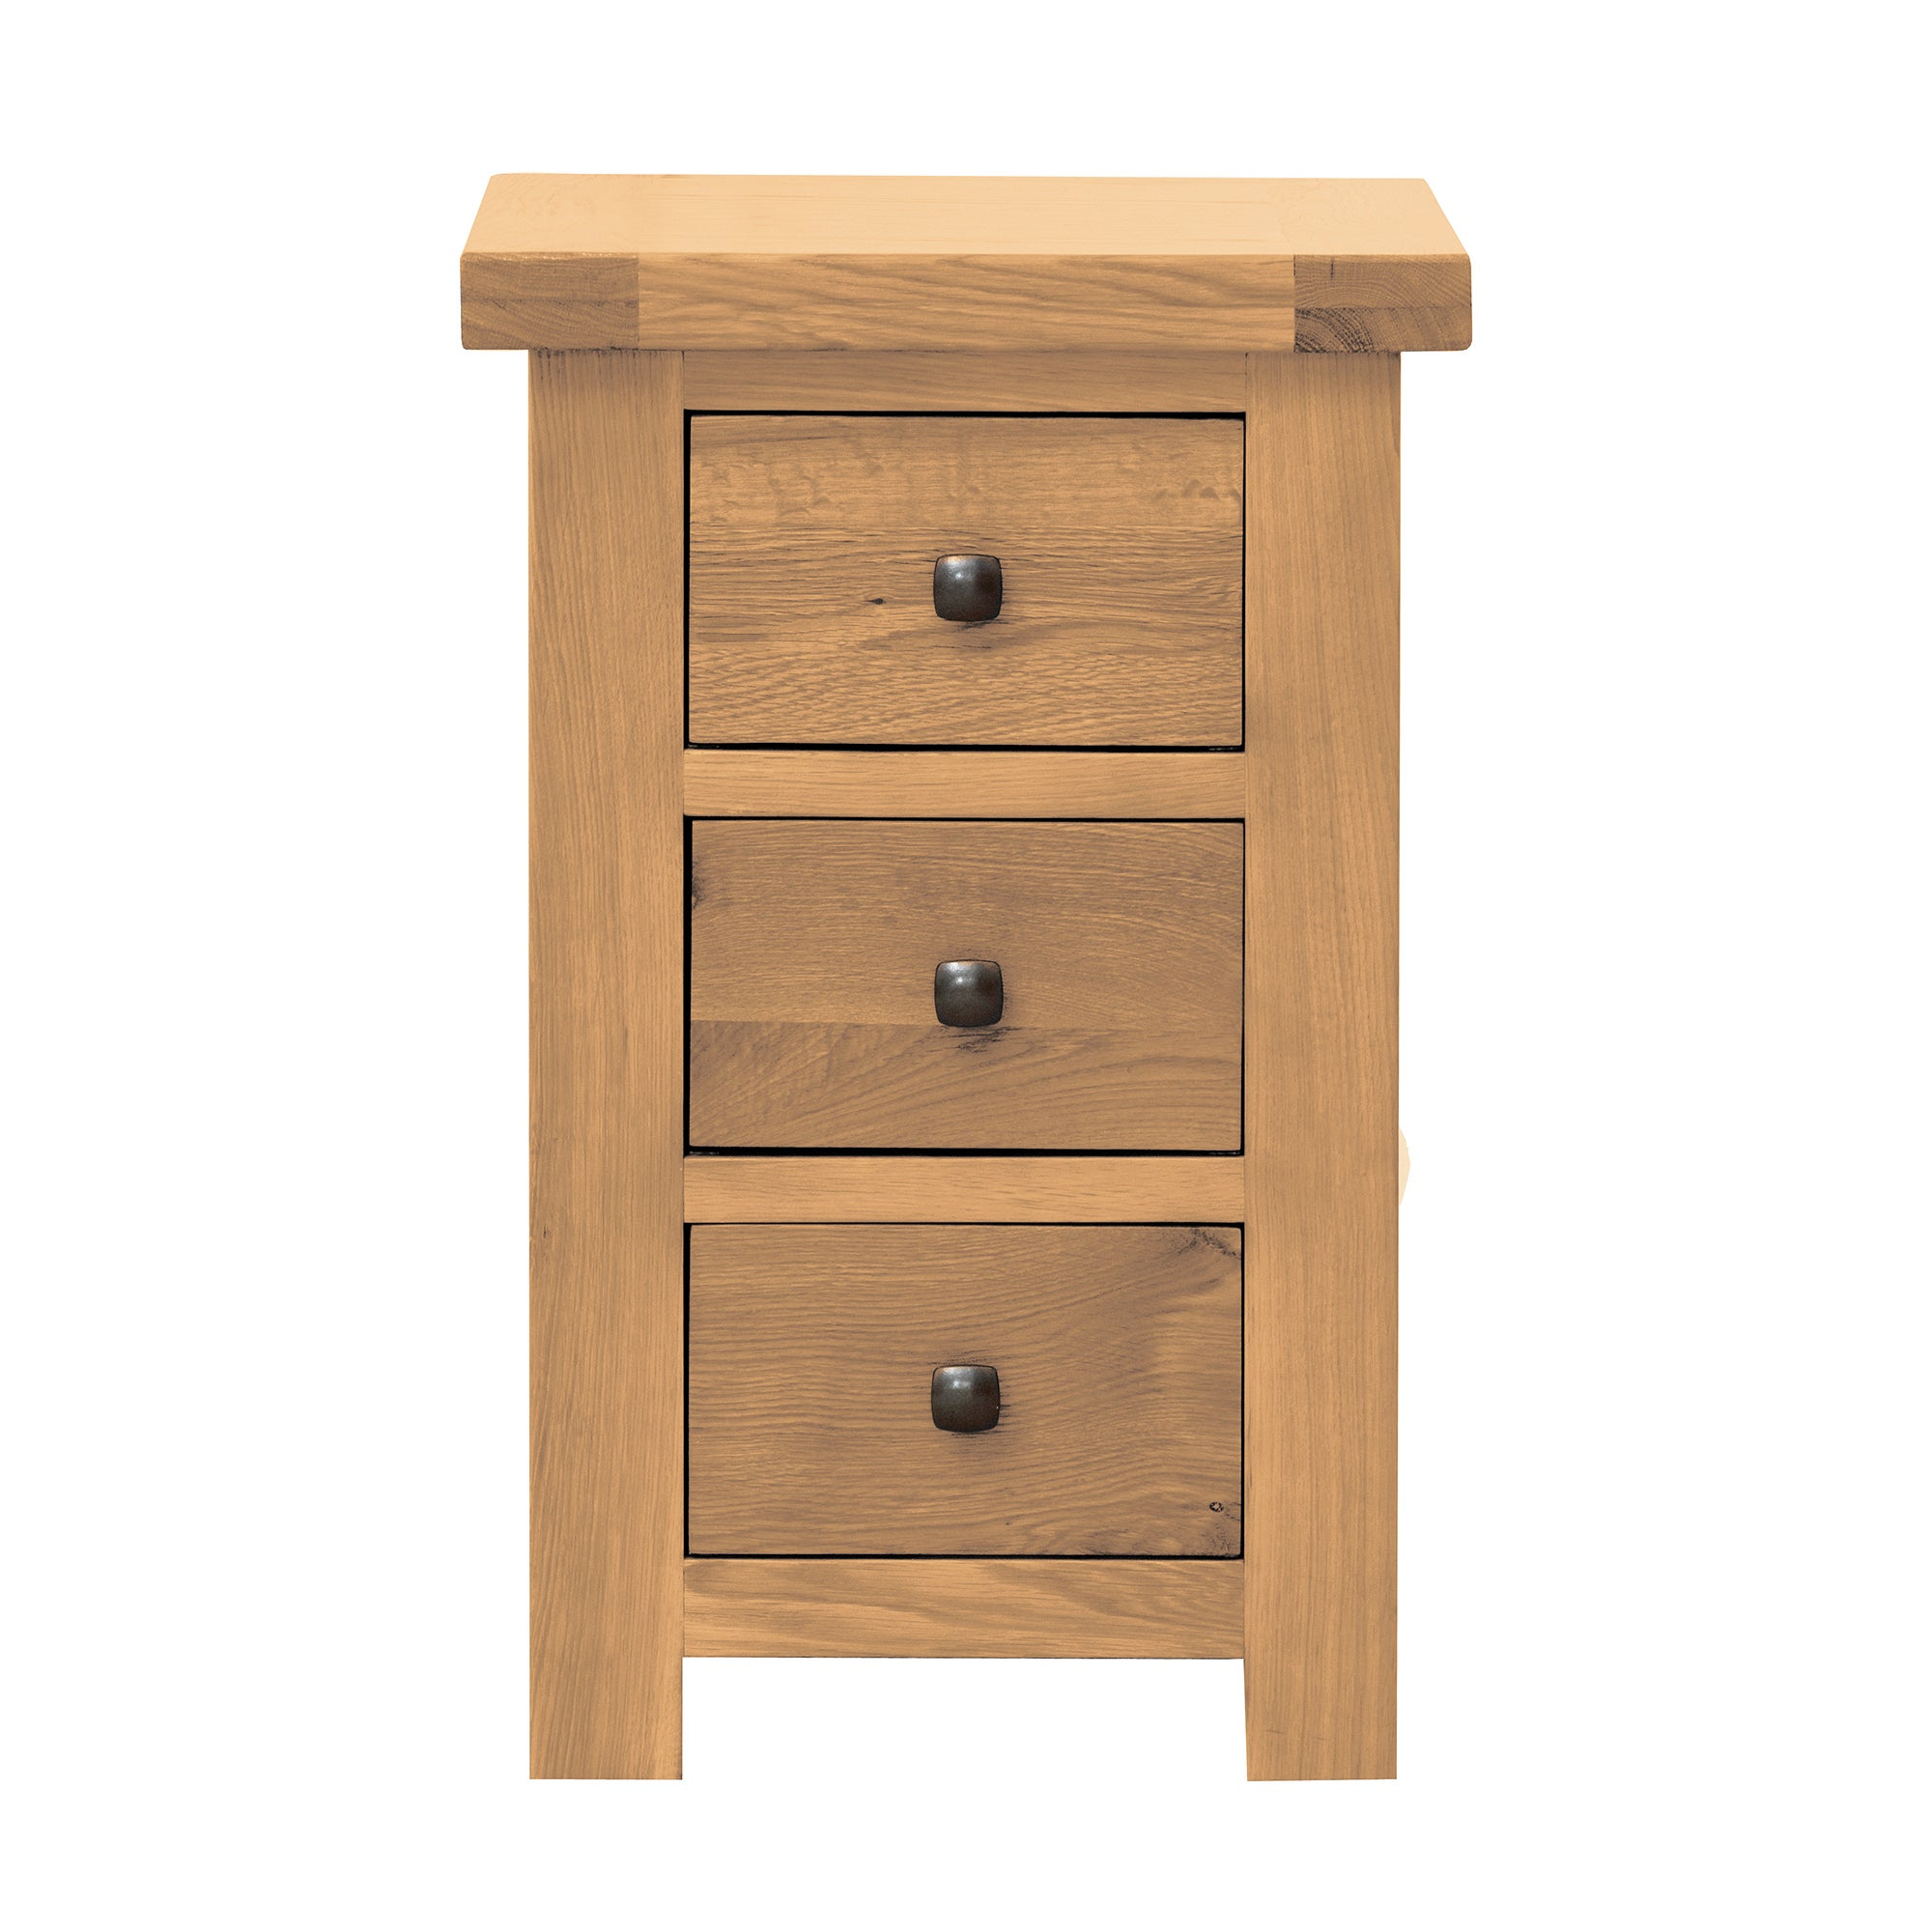 Harrogate Oak Bedside Unit